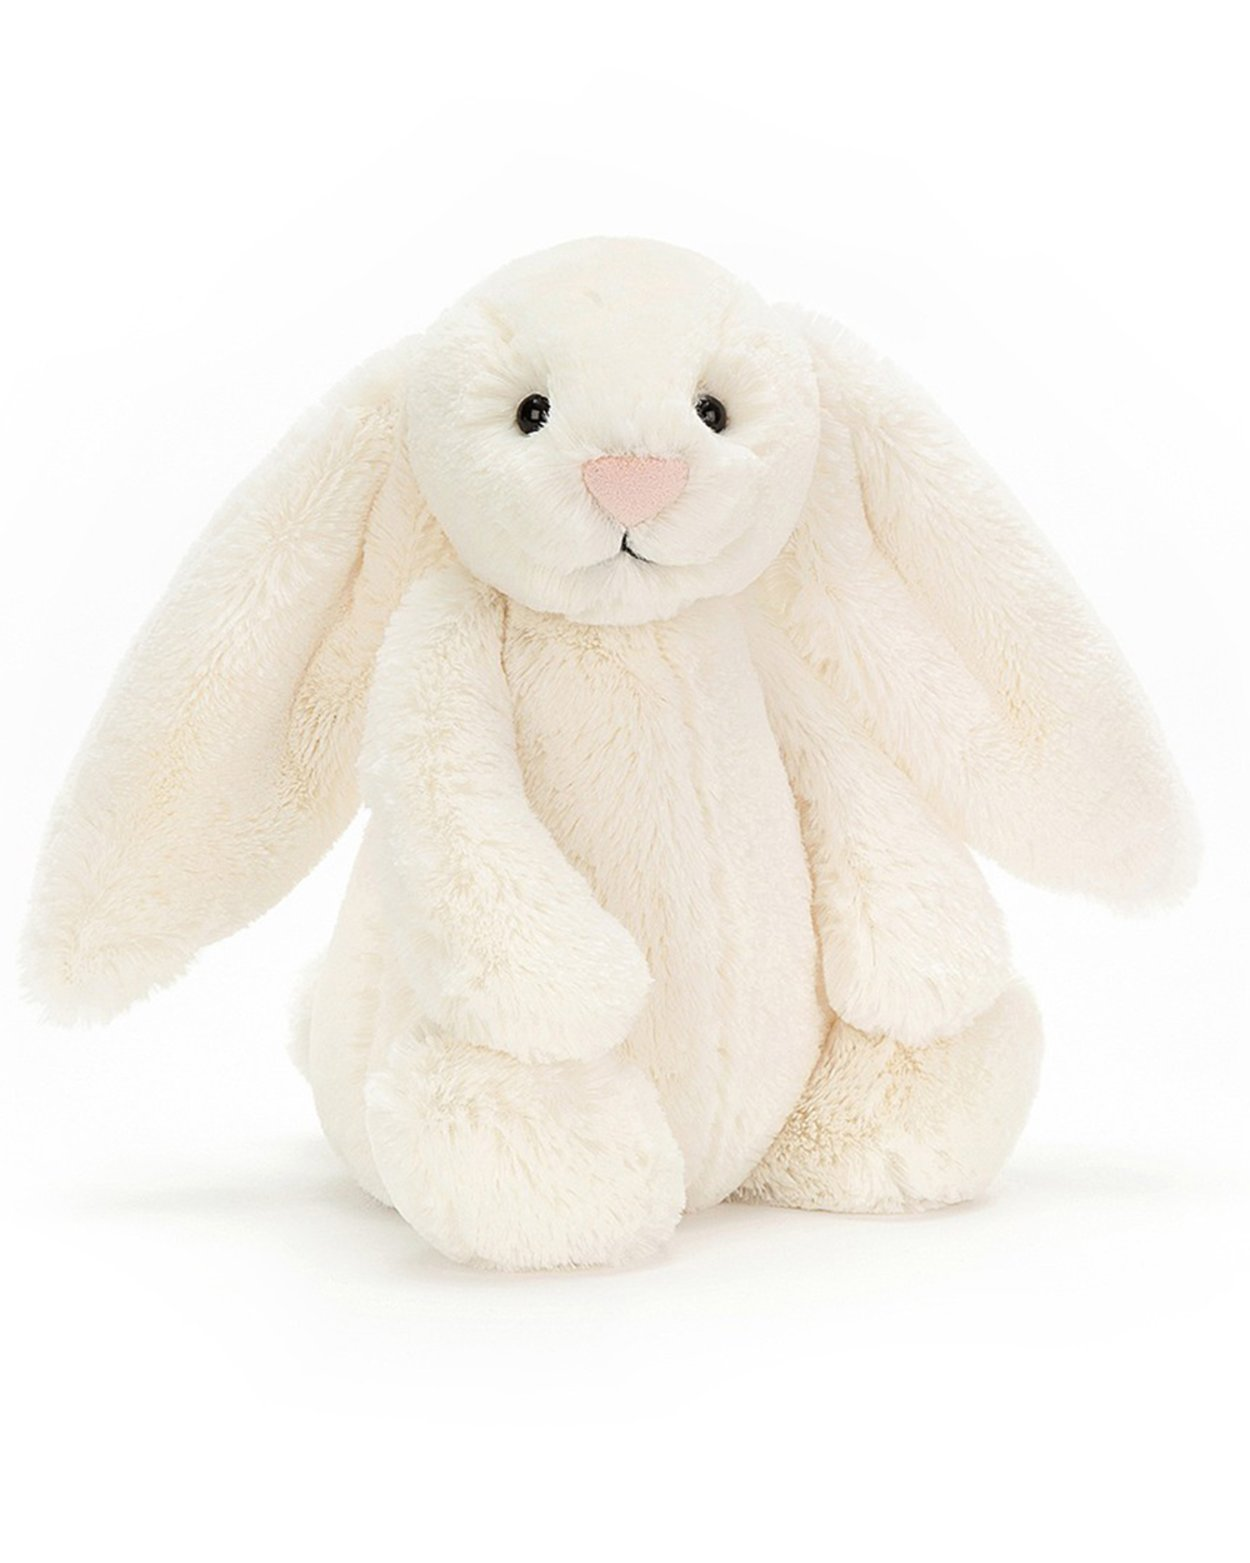 Bashful Bunny in Cream - Medium